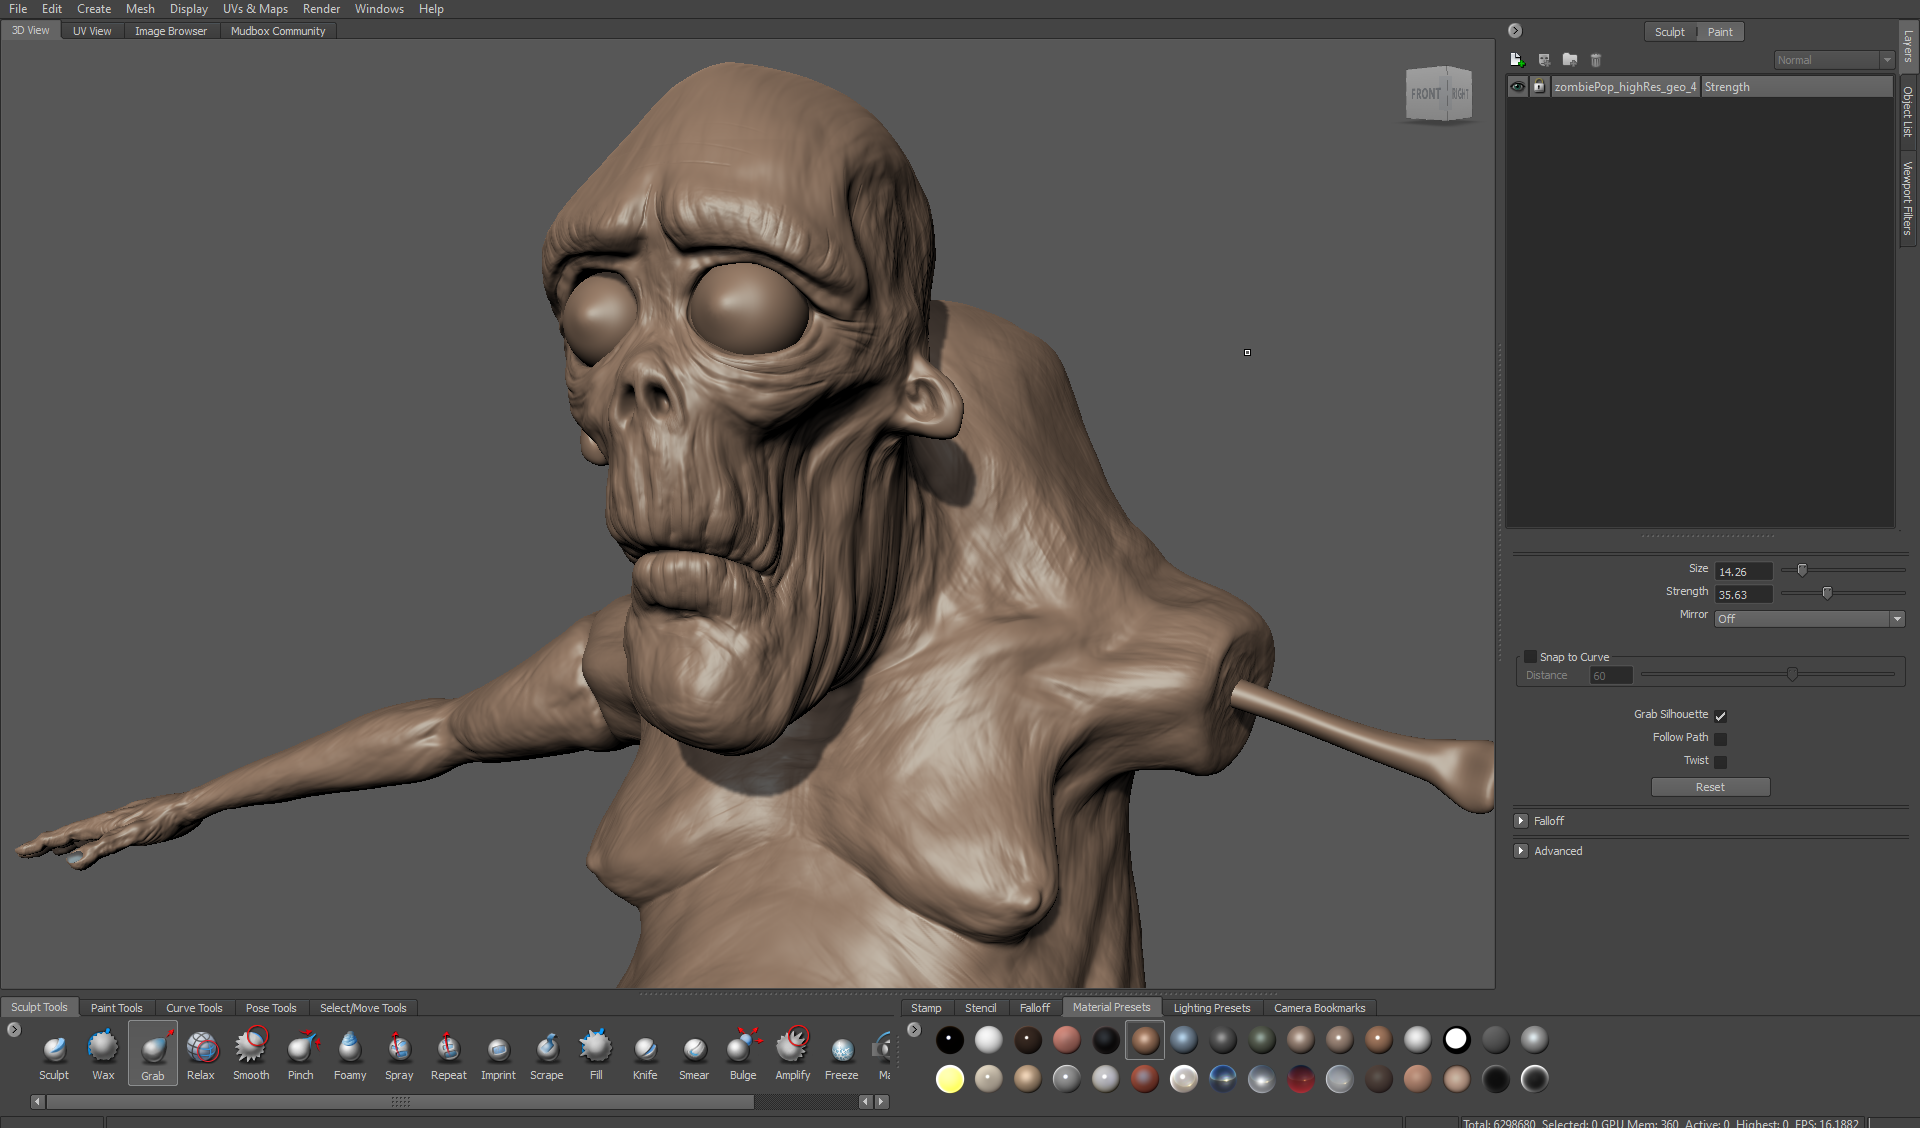 Zombie Crossing 1: Modelling & Sculpting